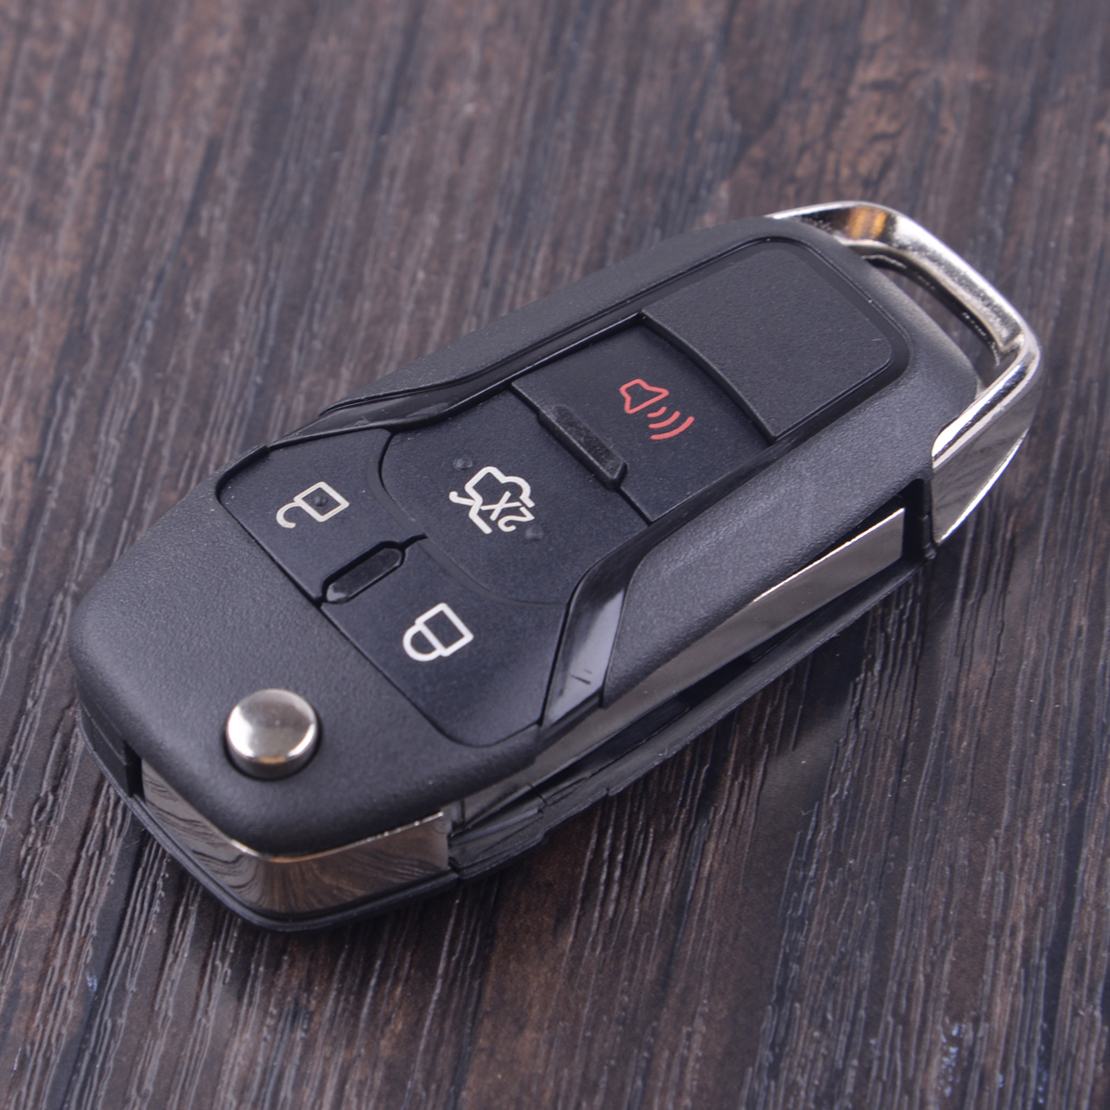 CITALL 4 Buttons Car Flip Remote <font><b>Key</b></font> Shell Case Fob Replacement with uncut blade for <font><b>Ford</b></font> <font><b>Fusion</b></font> Edge Explorer 2013 2014 <font><b>2015</b></font> image